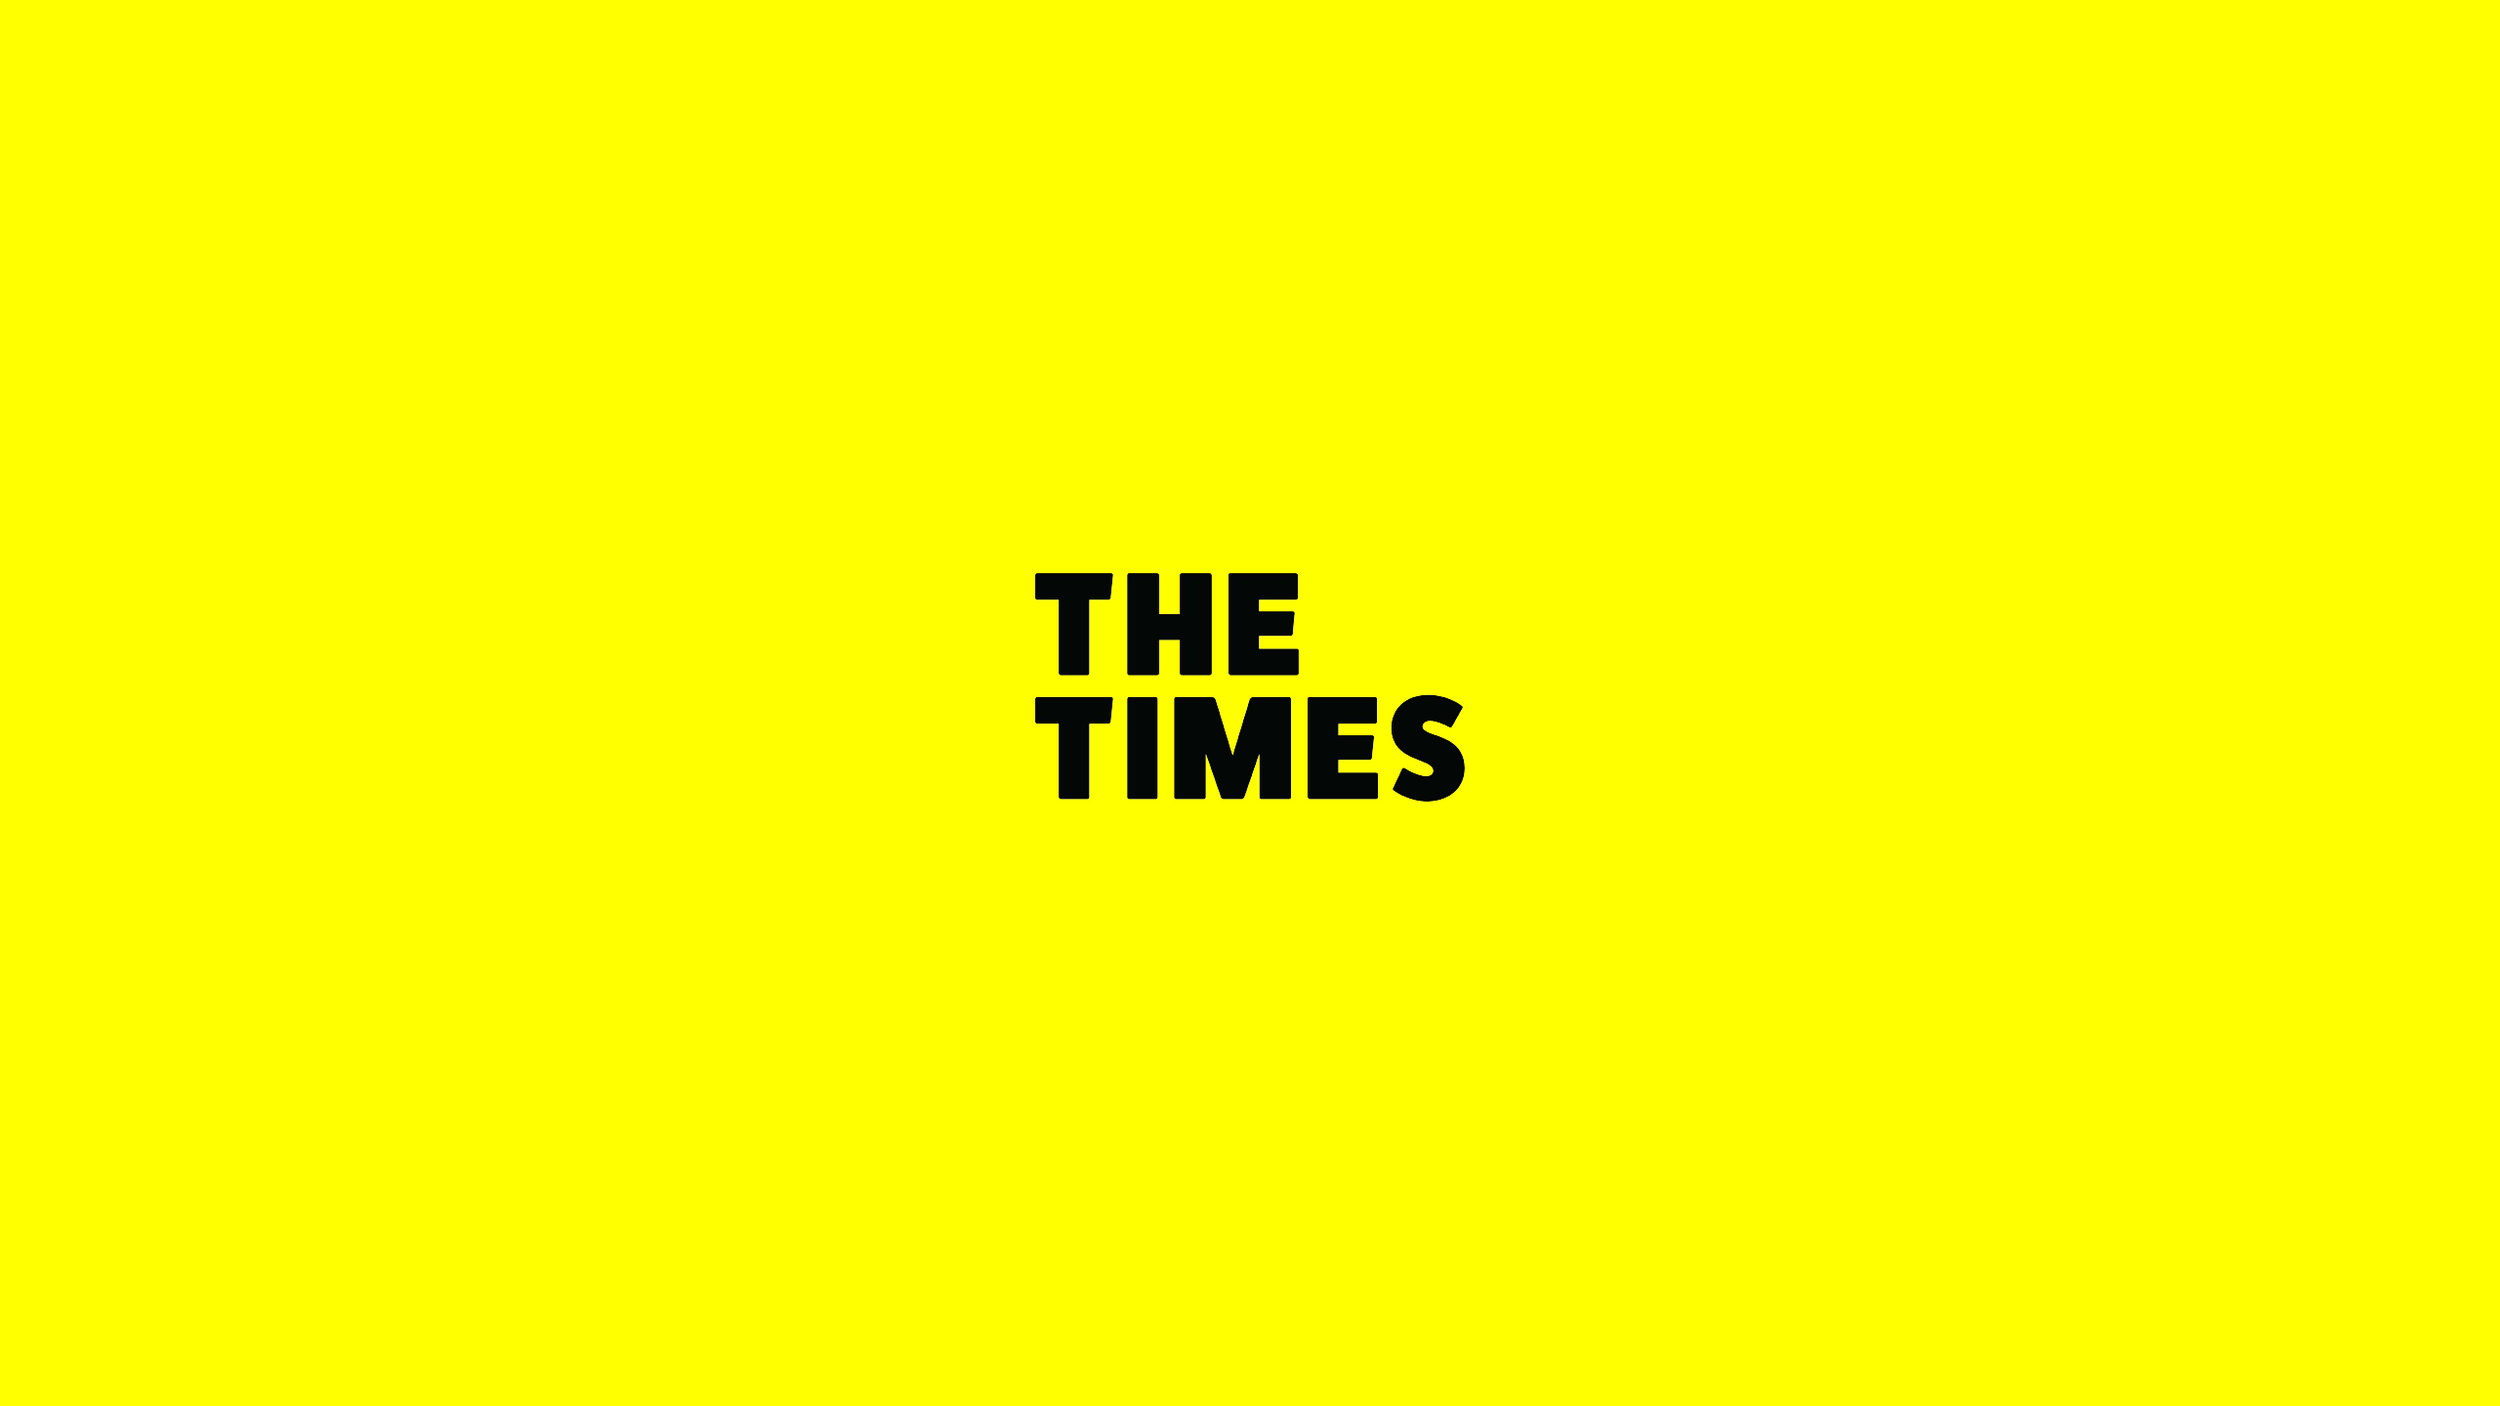 the times youtube banner 2560 x 1440 (3).jpg